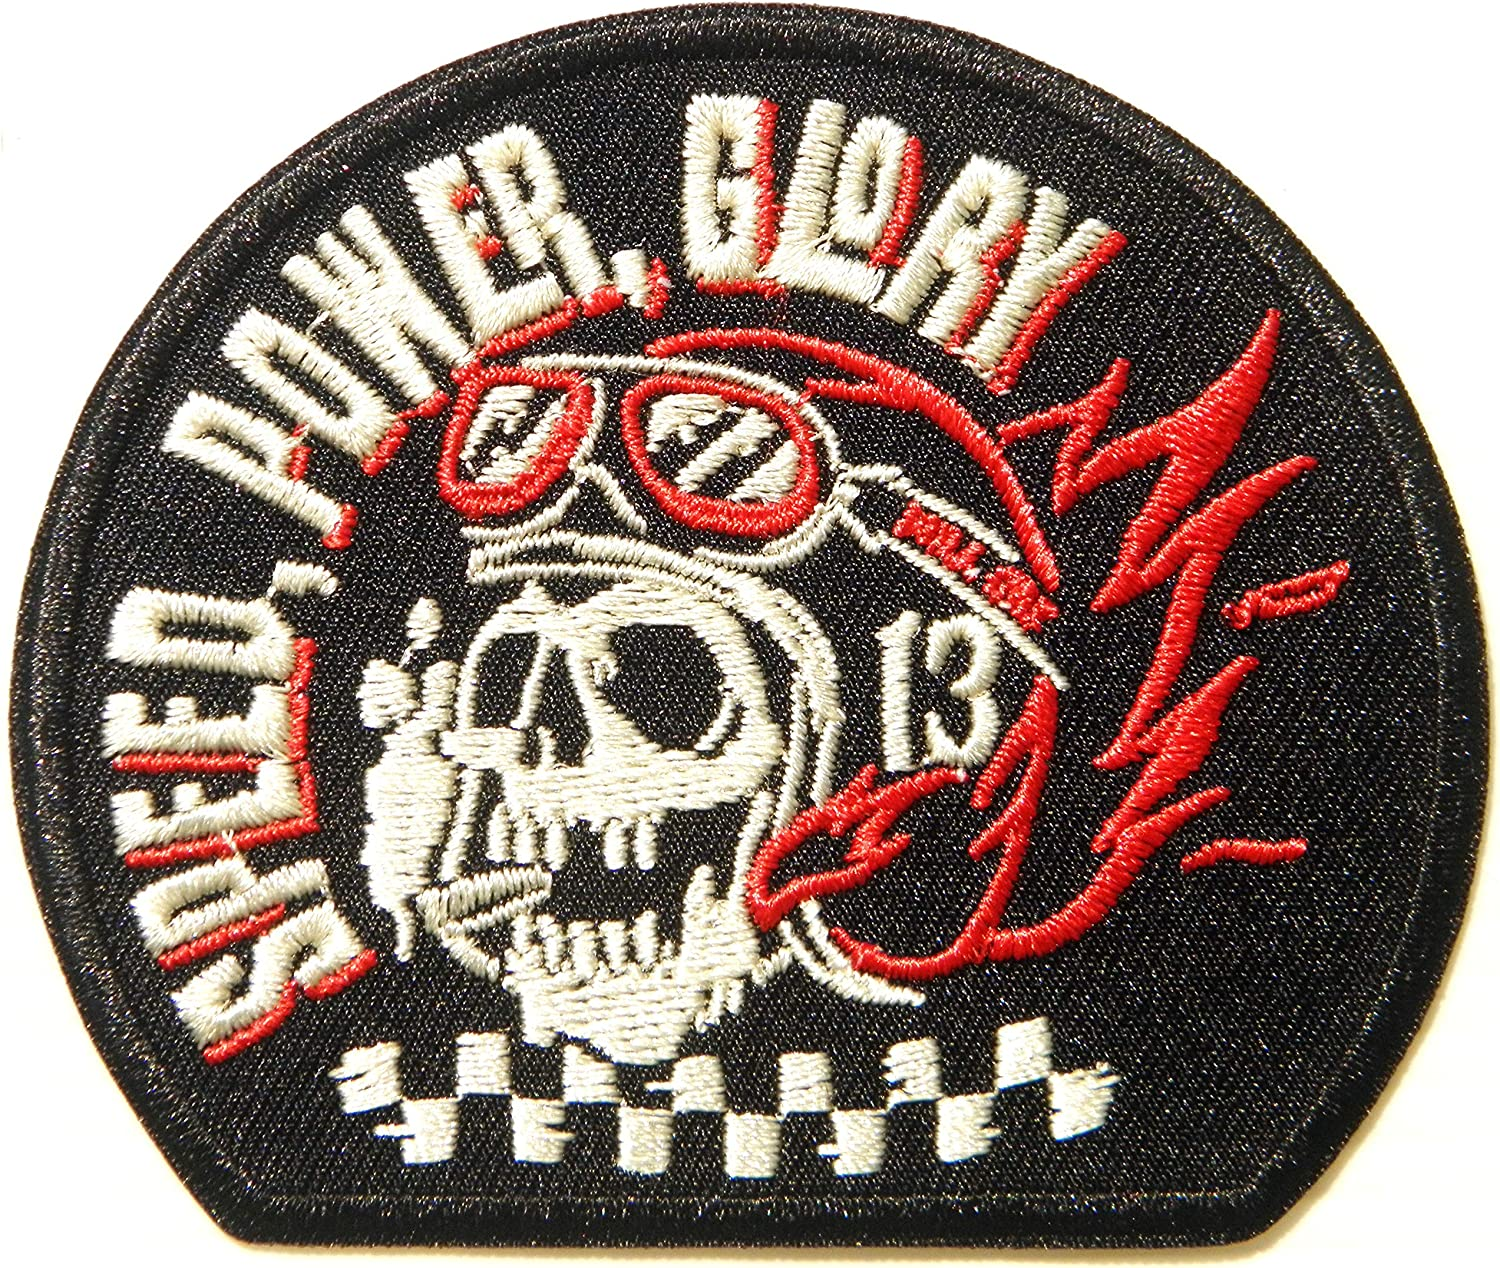 AUTOMOTIVE PACTH CAFE Speed Power Glory Biker Racer Motorcycles Patch Sew Iron on Transfers Applique Embroidered Racing Garage T Shirt Jacket Costume Clothe Fabric Accessories Badge Sign Logo Emblem